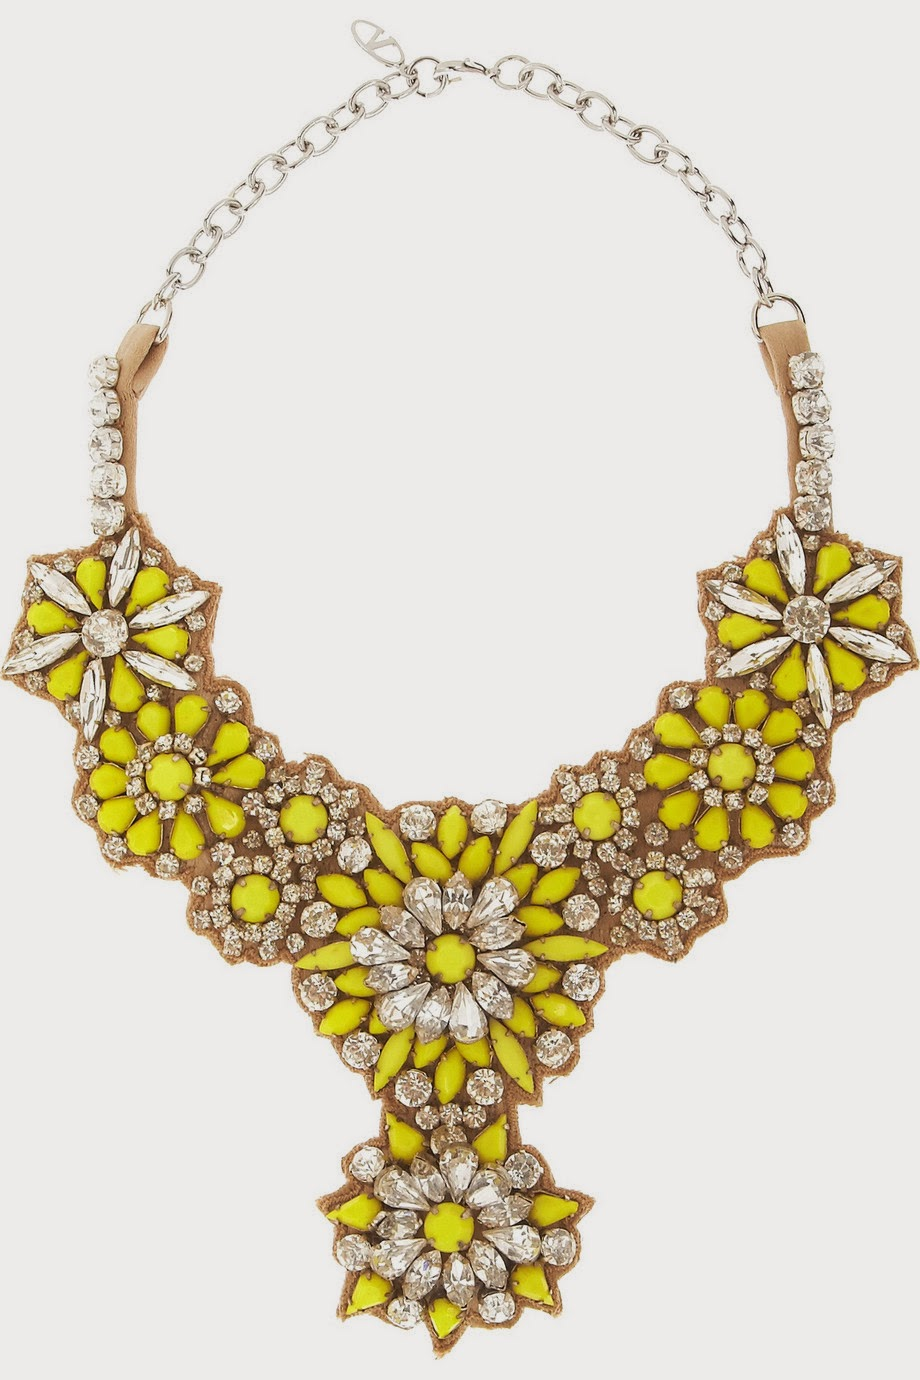 Find and save ideas about Jewelry trends on Pinterest. | See more ideas about Jewelry accessories, Jewelry trends and Accessorize trends.